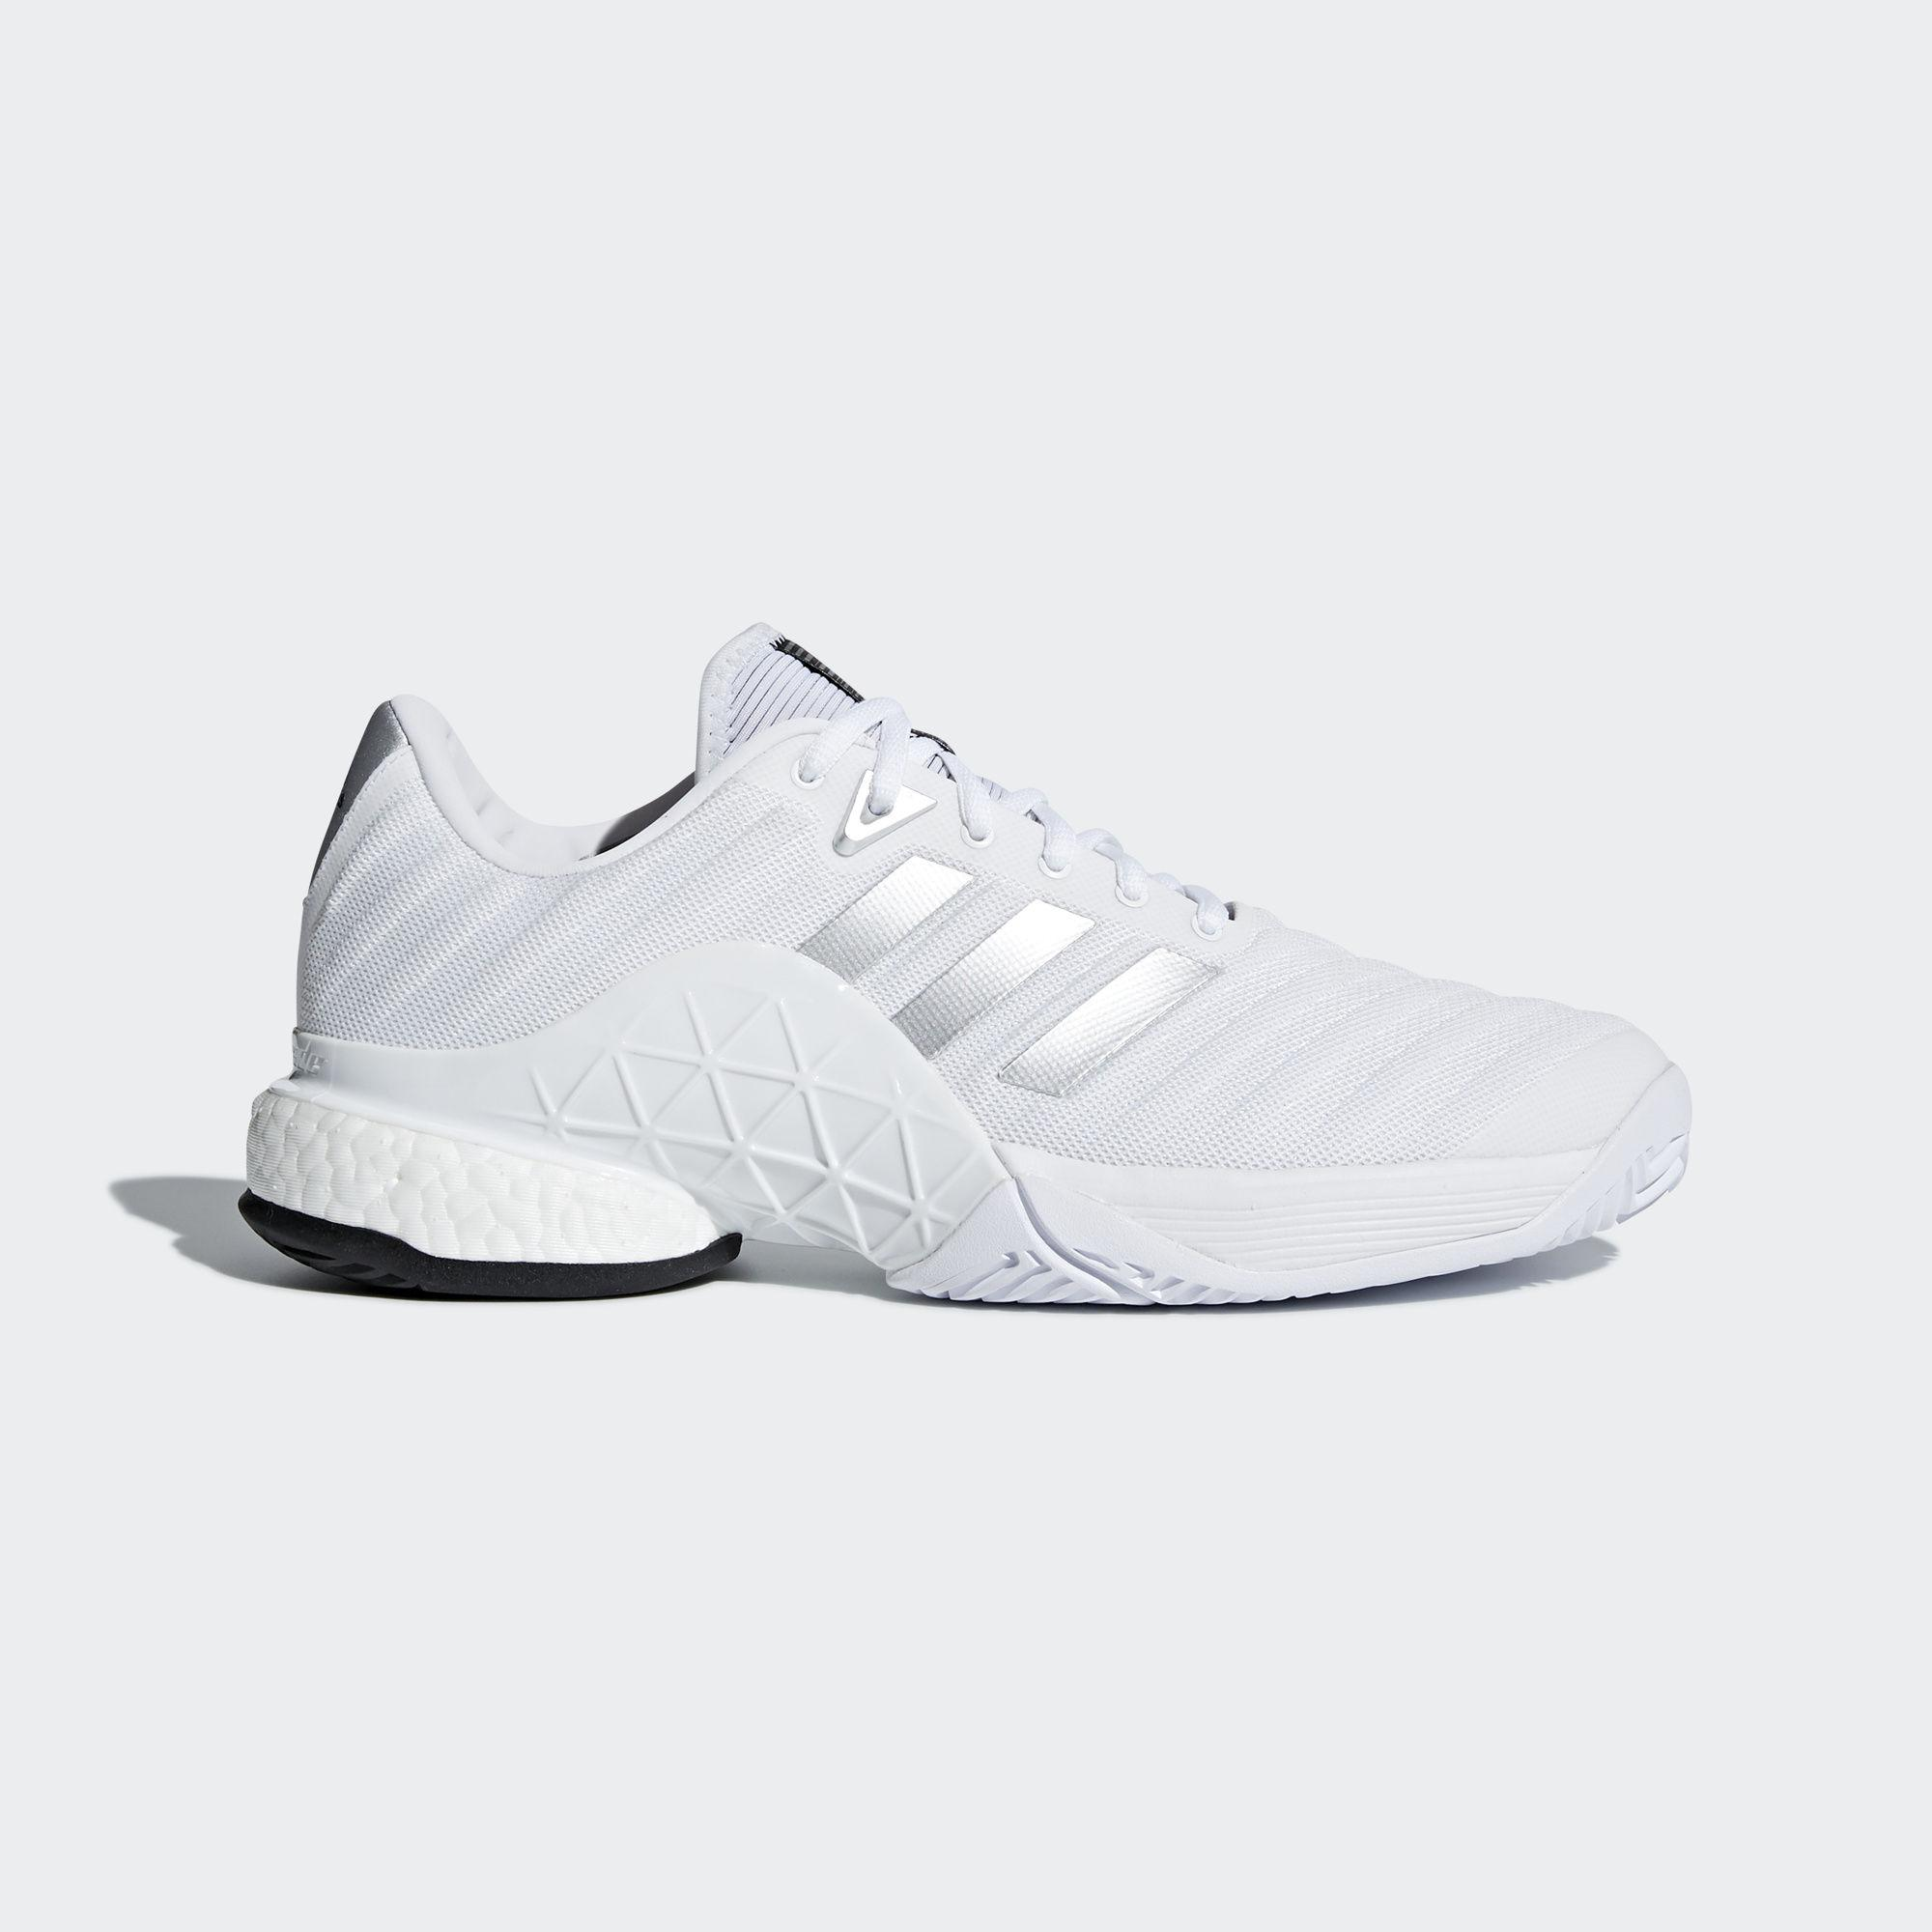 new product 584e3 e0af1 Adidas Mens Barricade Boost 2018 Tennis Shoes - WhiteSilver -  Tennisnuts.com